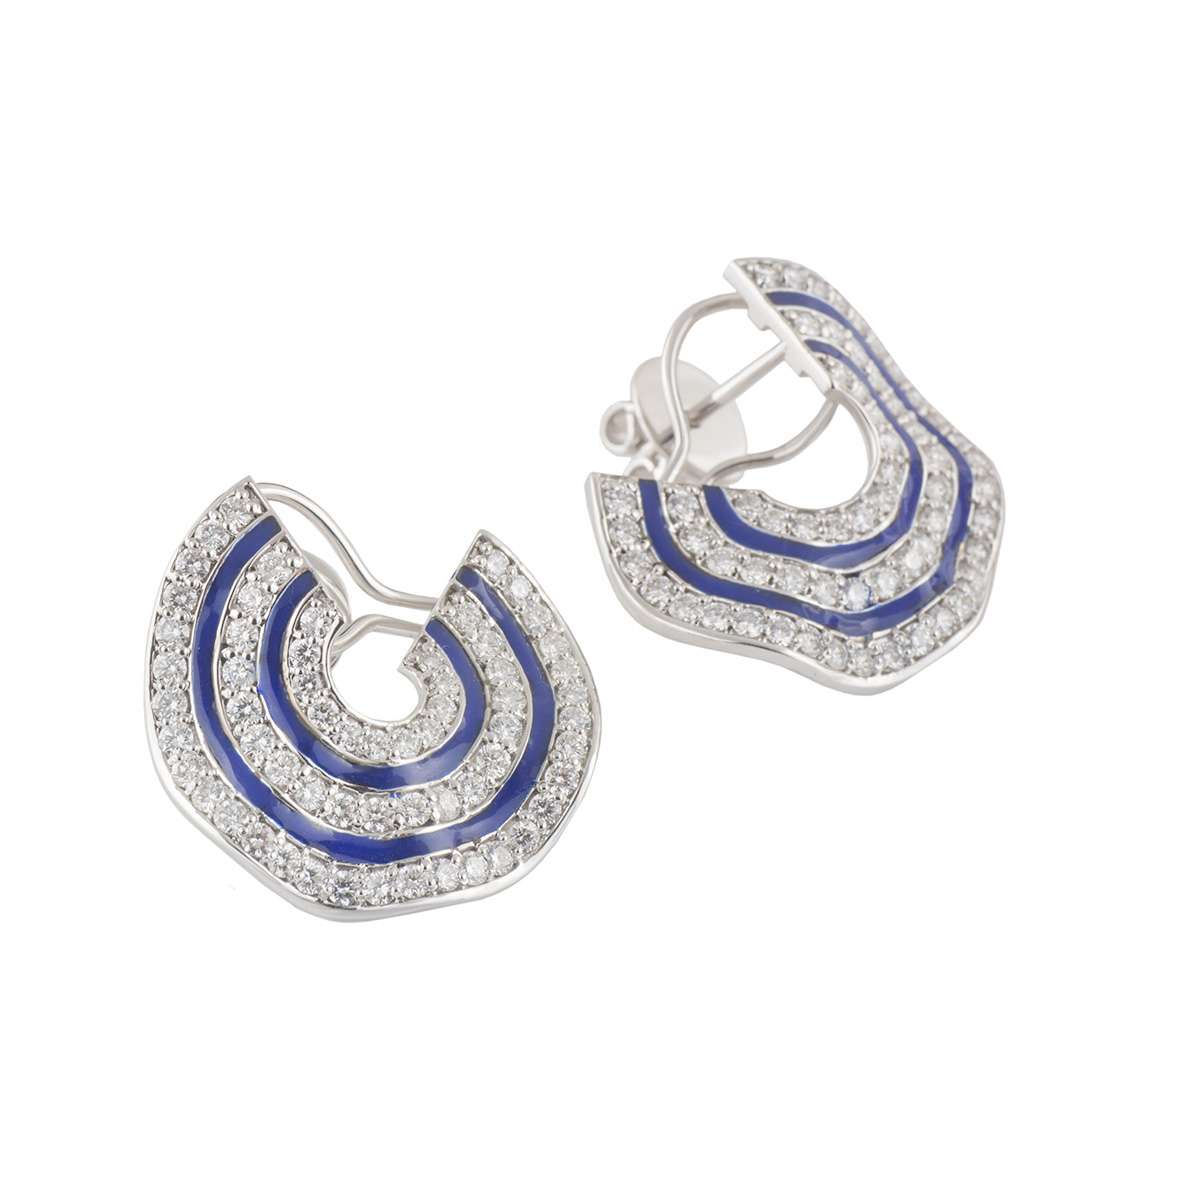 White Gold Diamond and Enamel Earrings 3.28ct G-H/VS